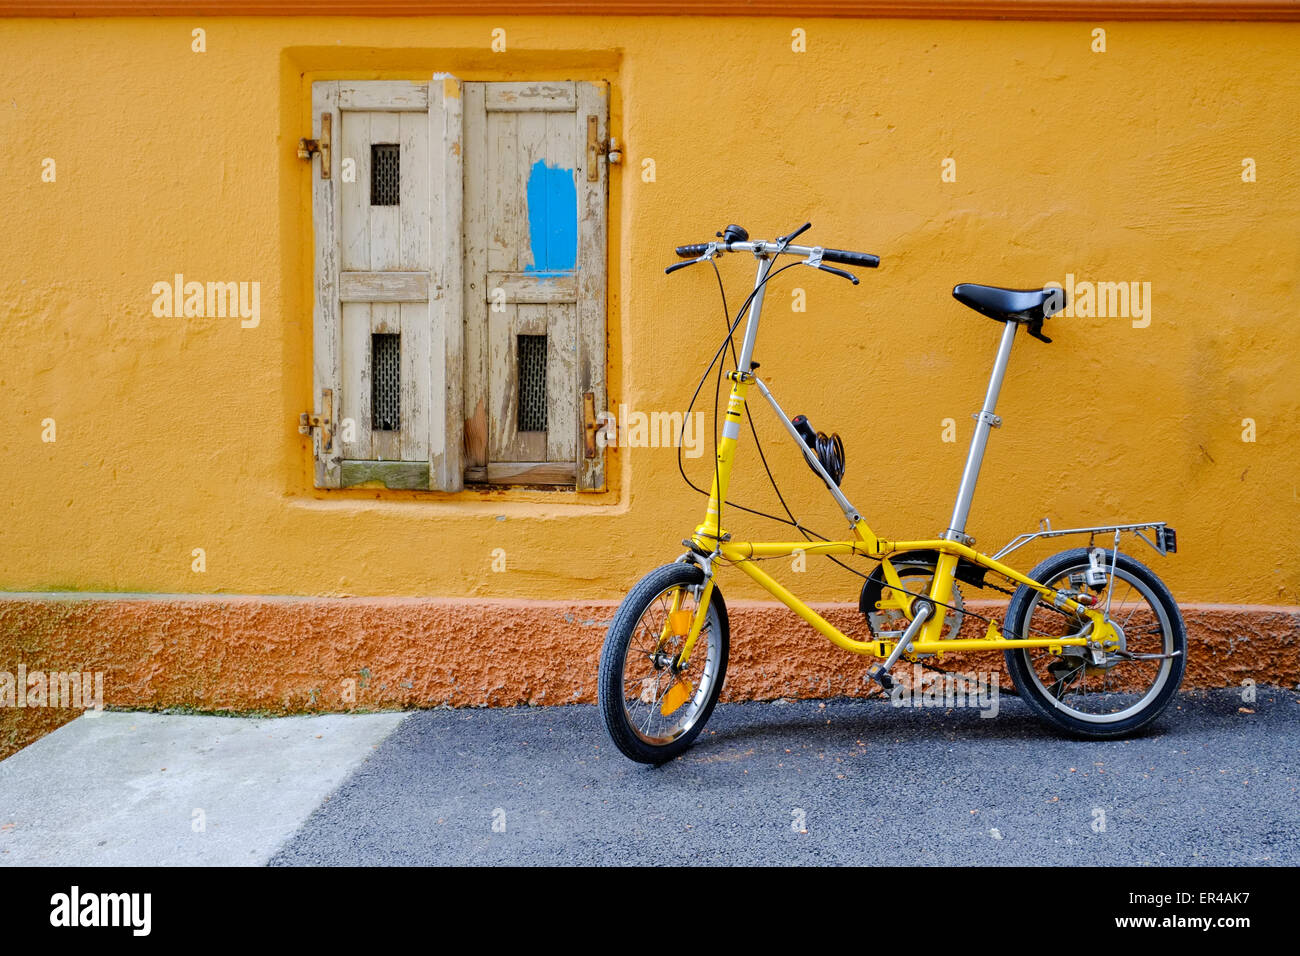 19b0f737f67 Foldable Bicycle Stock Photos & Foldable Bicycle Stock Images - Alamy